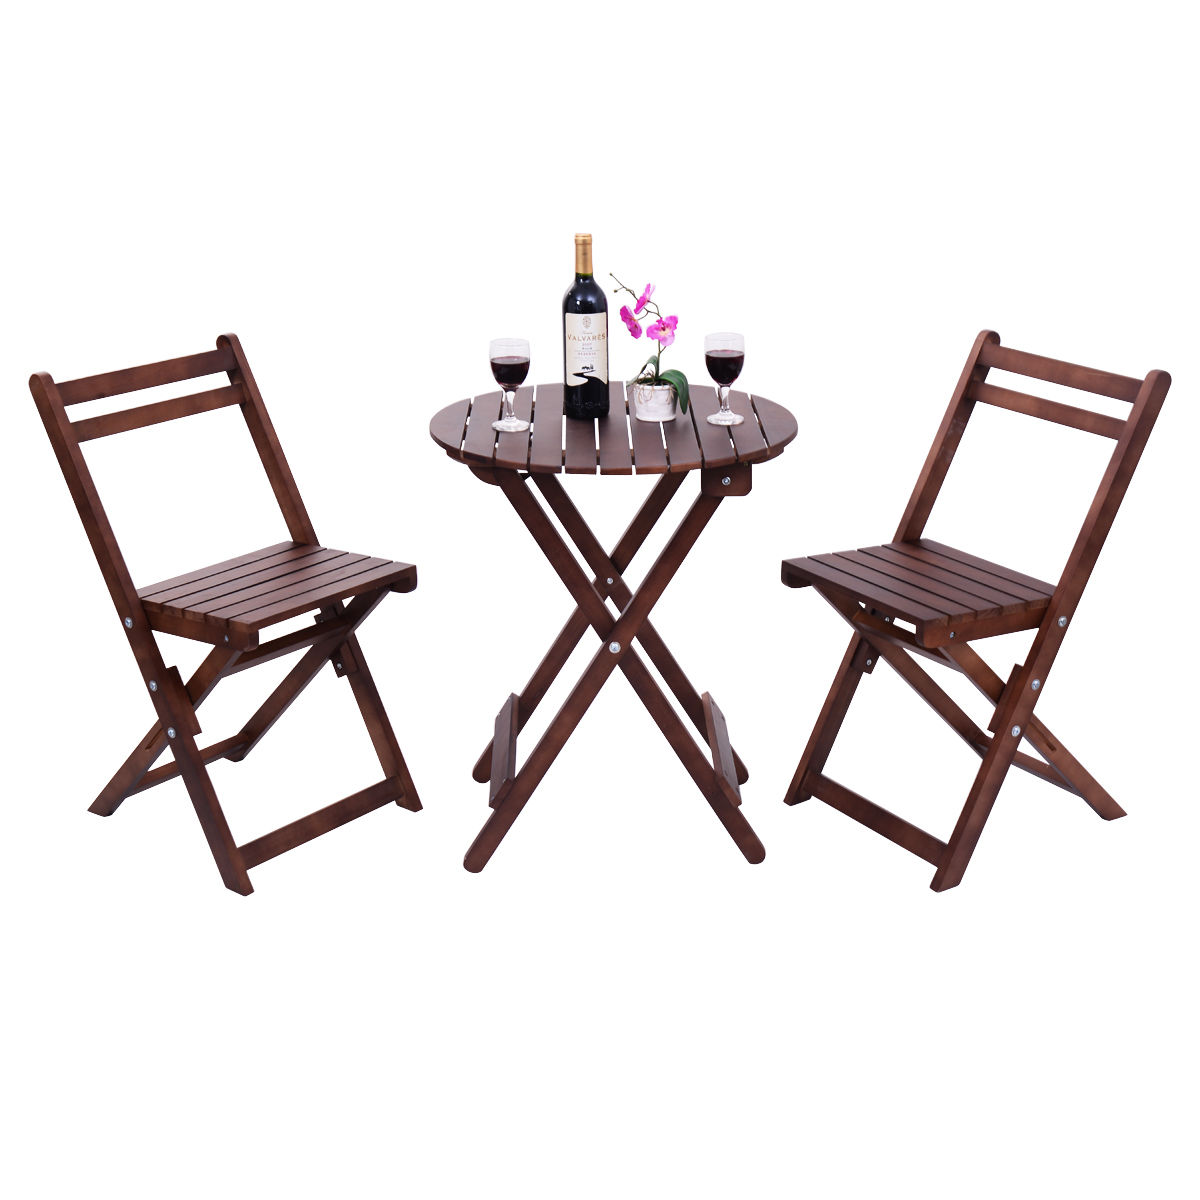 Giantex 3 Piece Garden Table Chair Set Wood Folding Outdoor Pool Patio Furniture Set Portable Modern Table Chairs Set OP3081